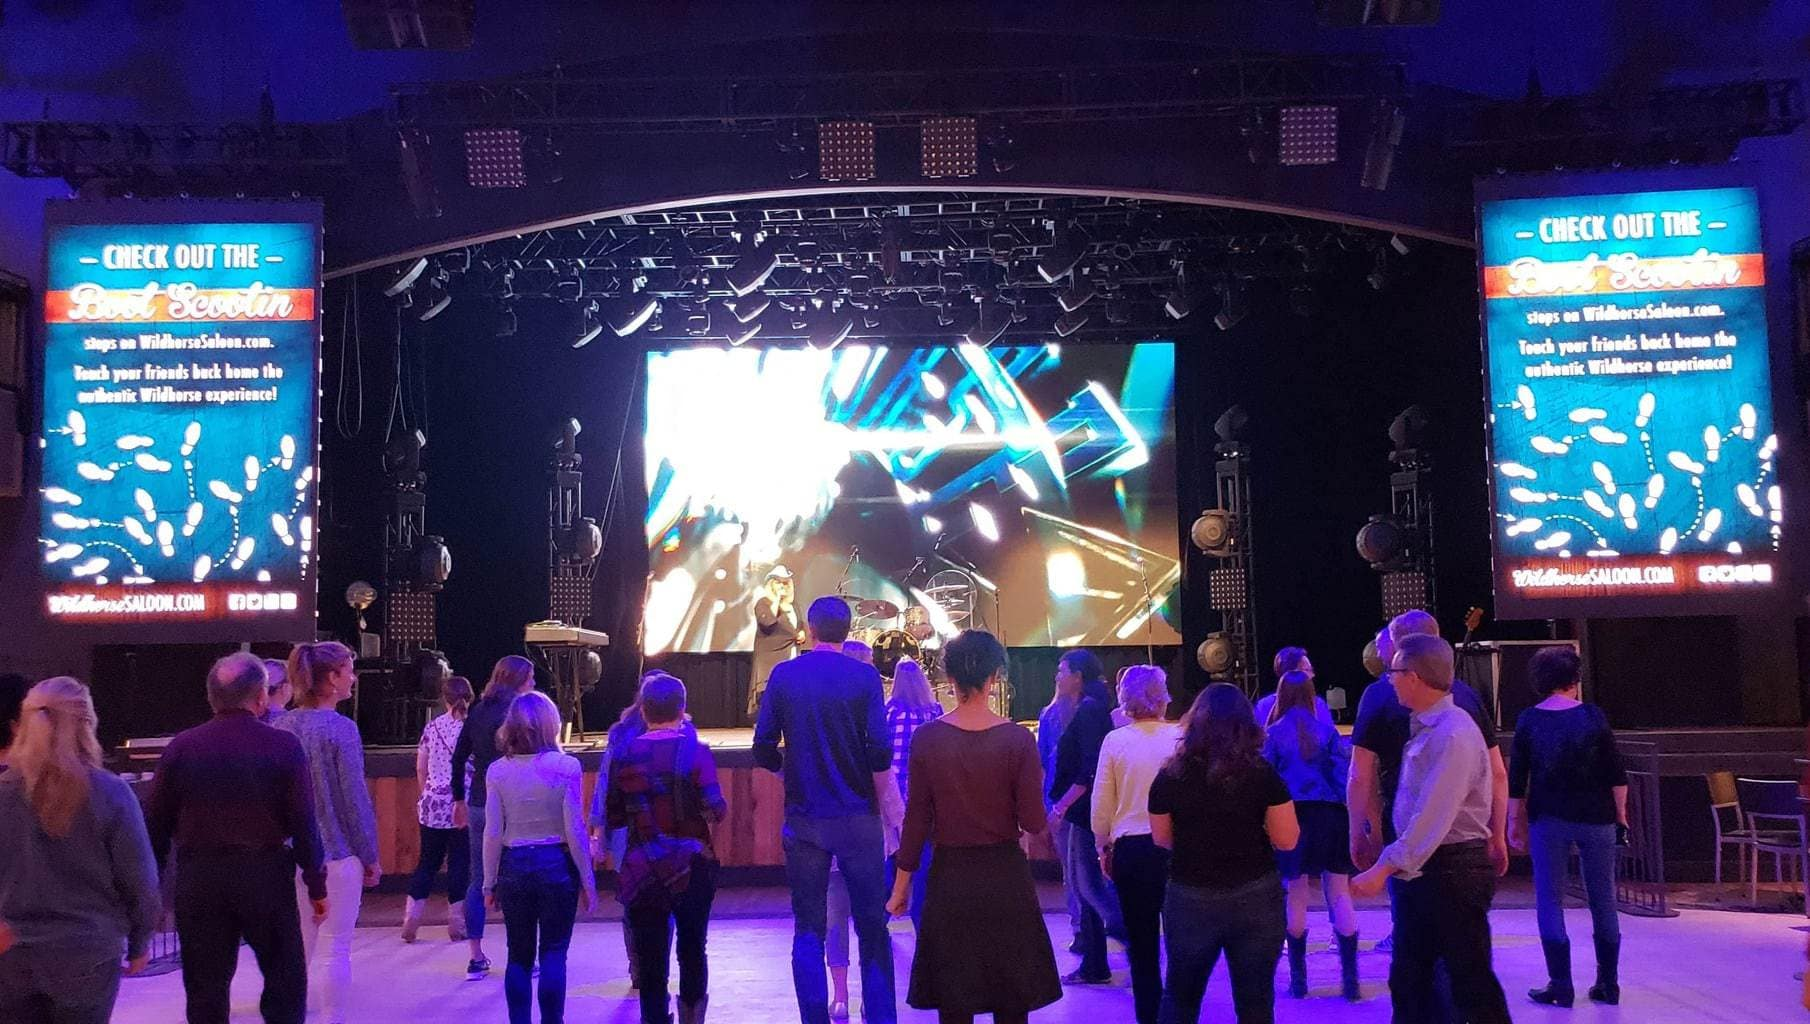 6 Reasons To Visit Wildhorse Saloon in Nashville – Family Fun For All